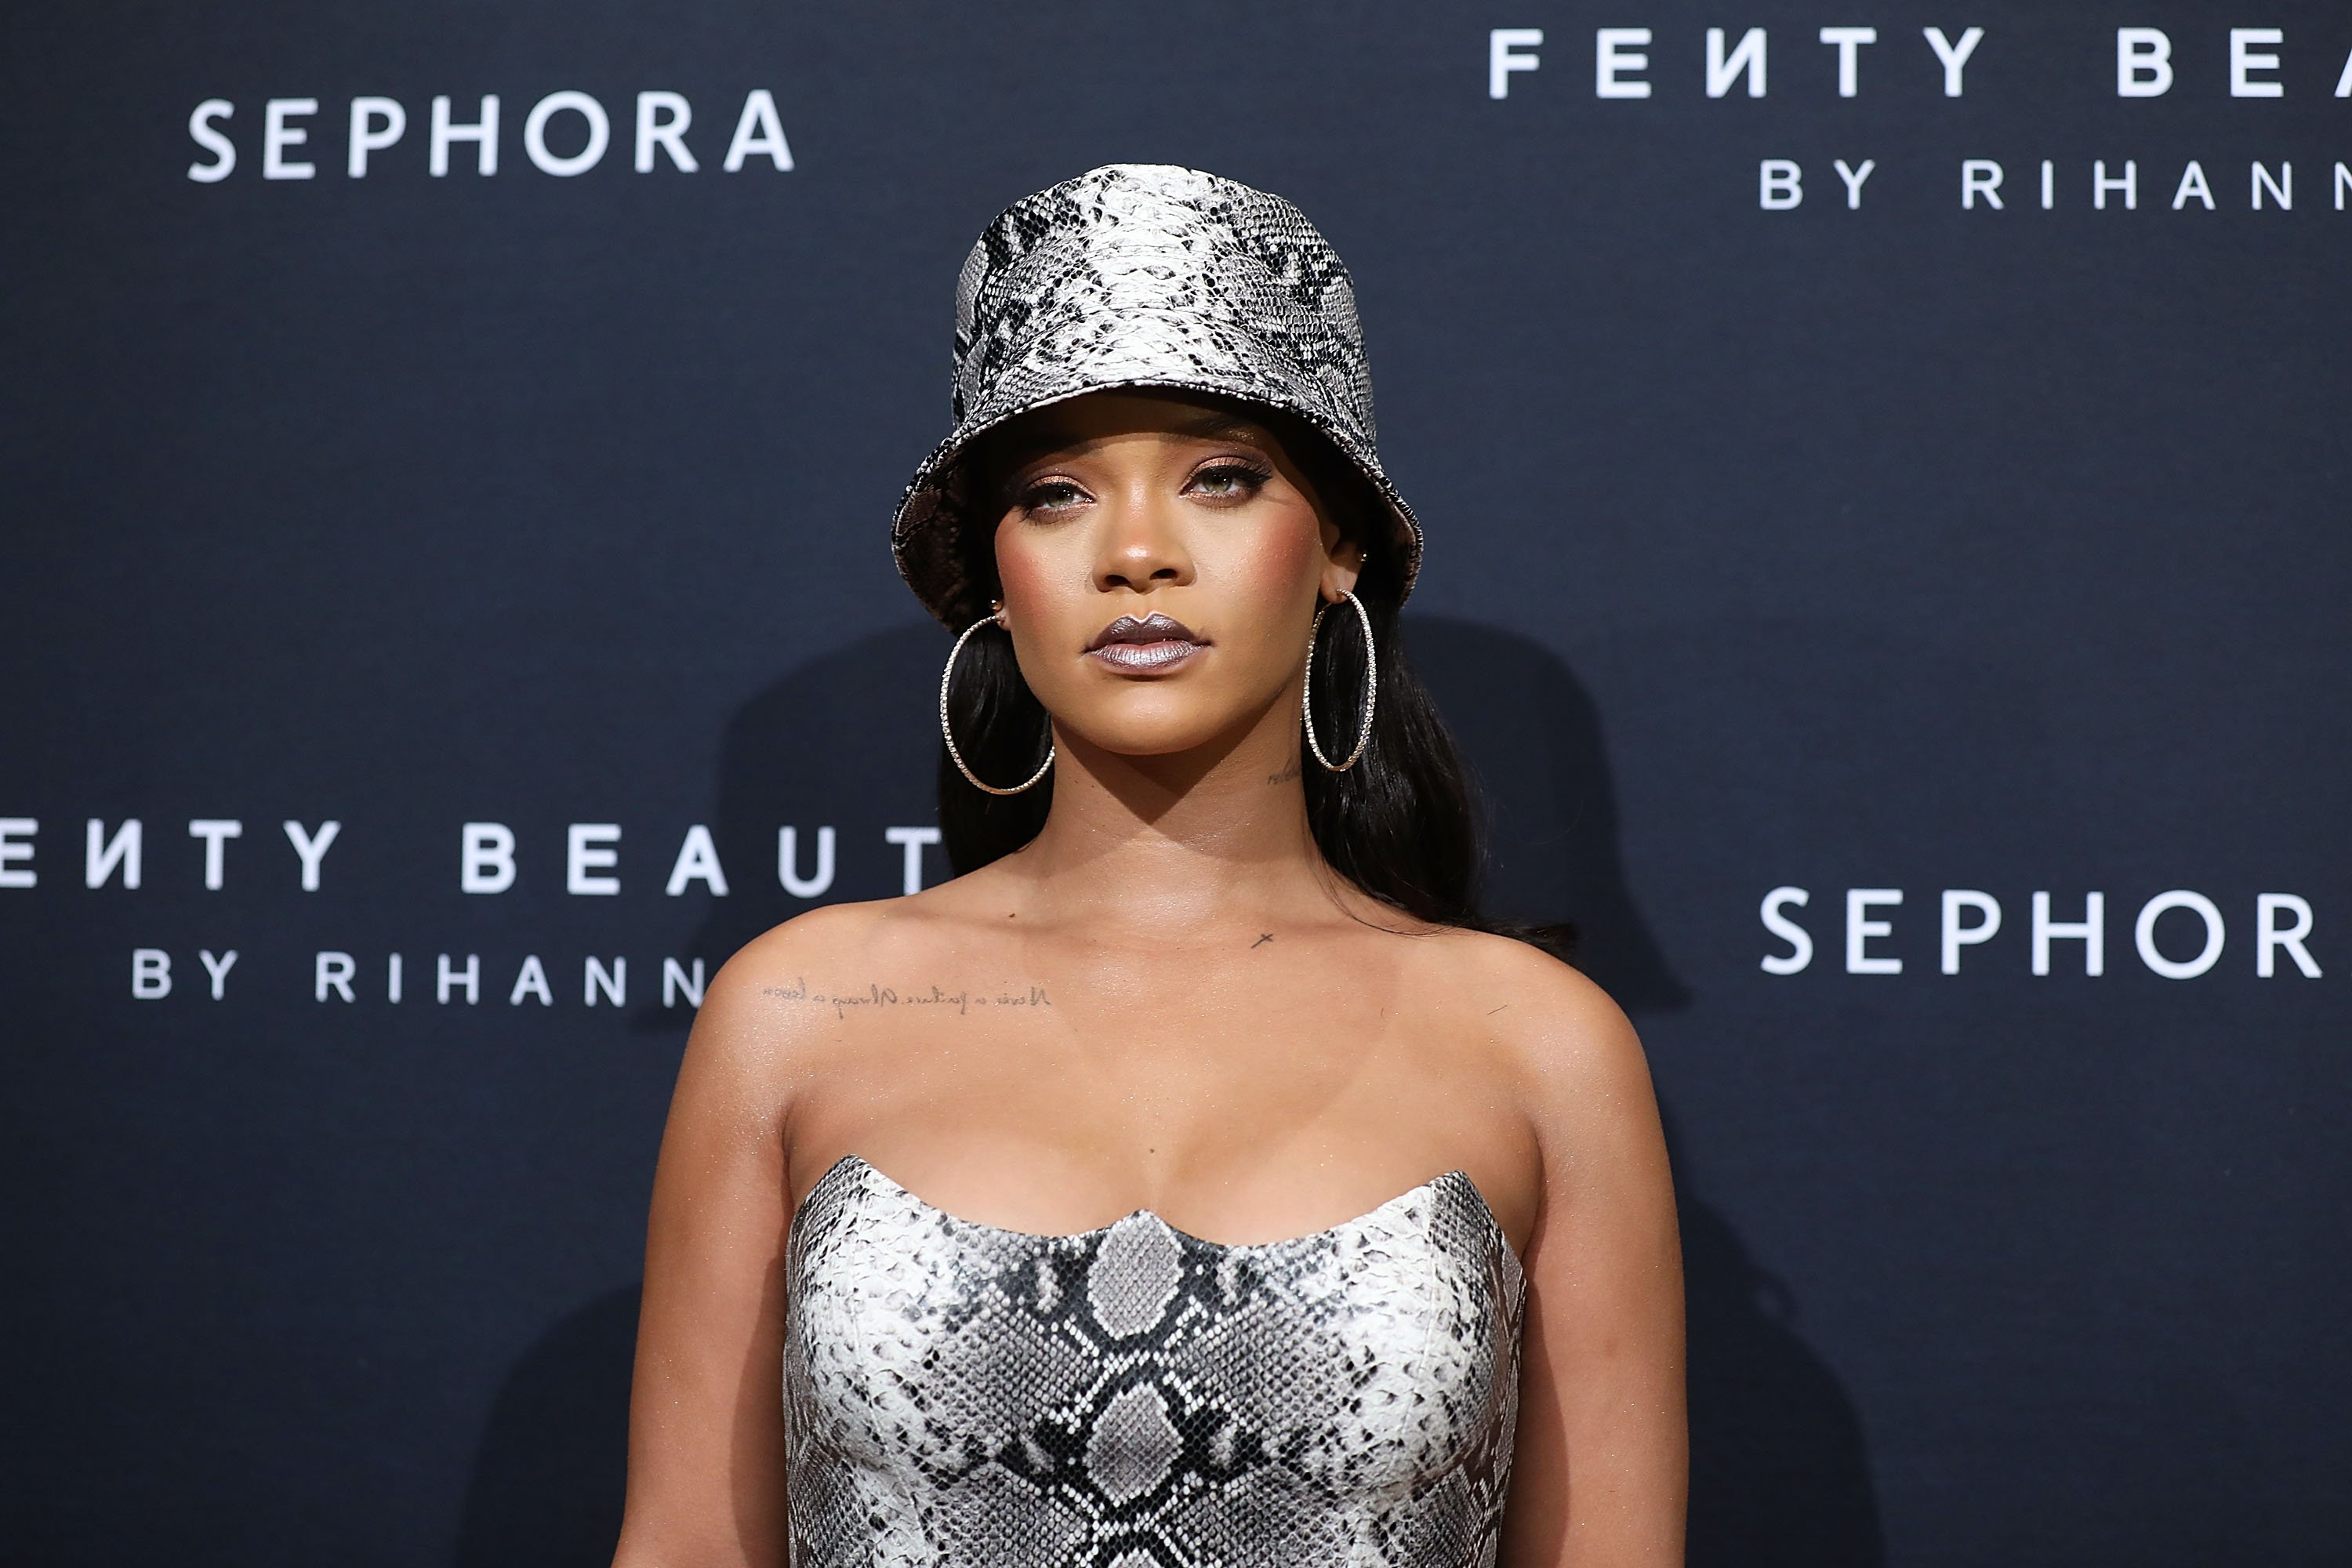 Rihanna attends the Fenty Beauty by Rihanna Anniversary Event on October 03, 2018. | Photo: GettyImages